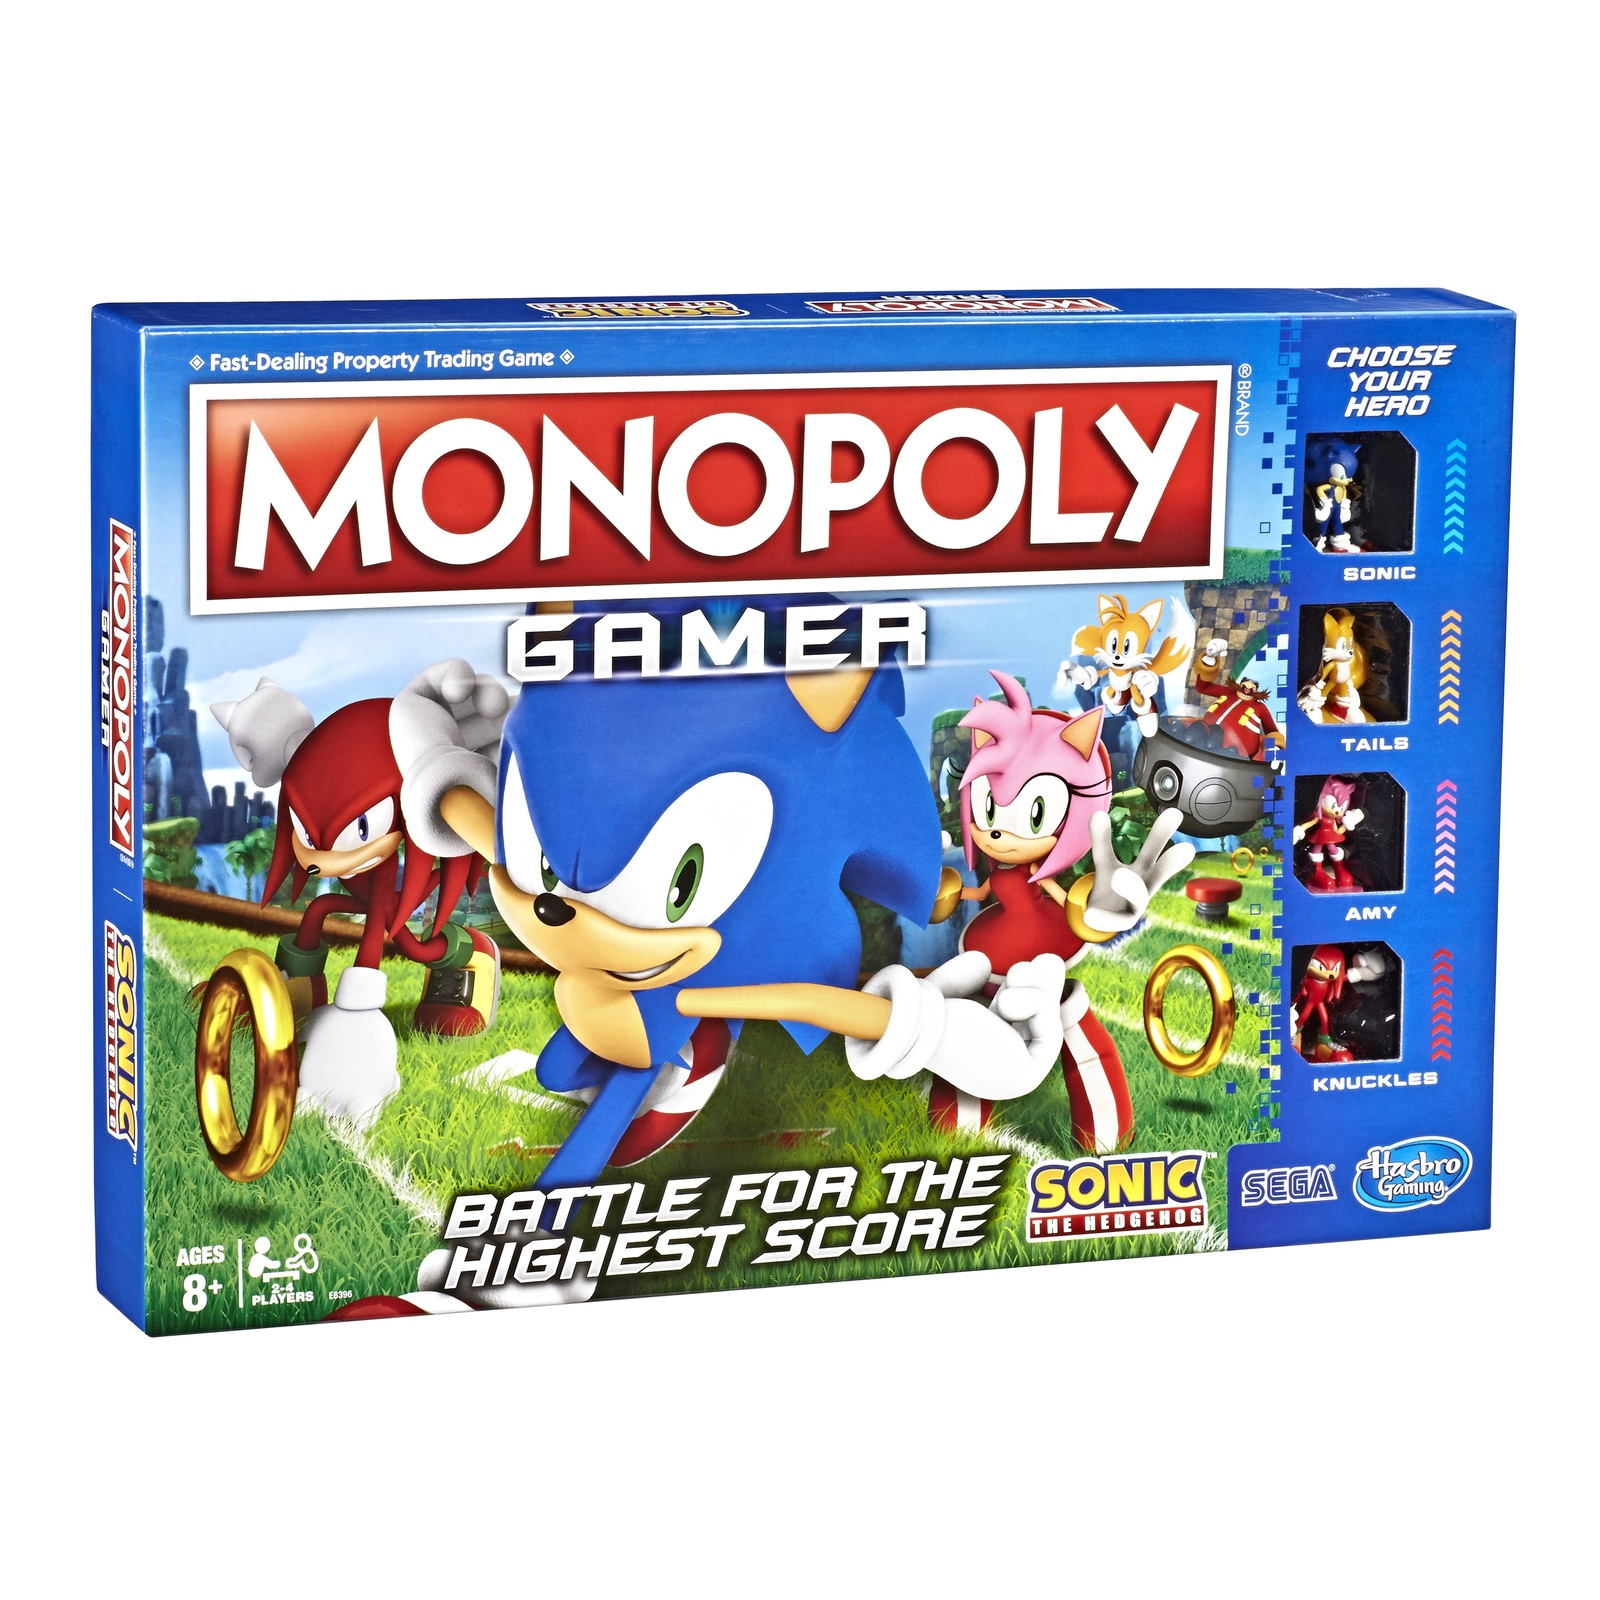 Monopoly Gamer - Sonic the Hedgehog Edition image